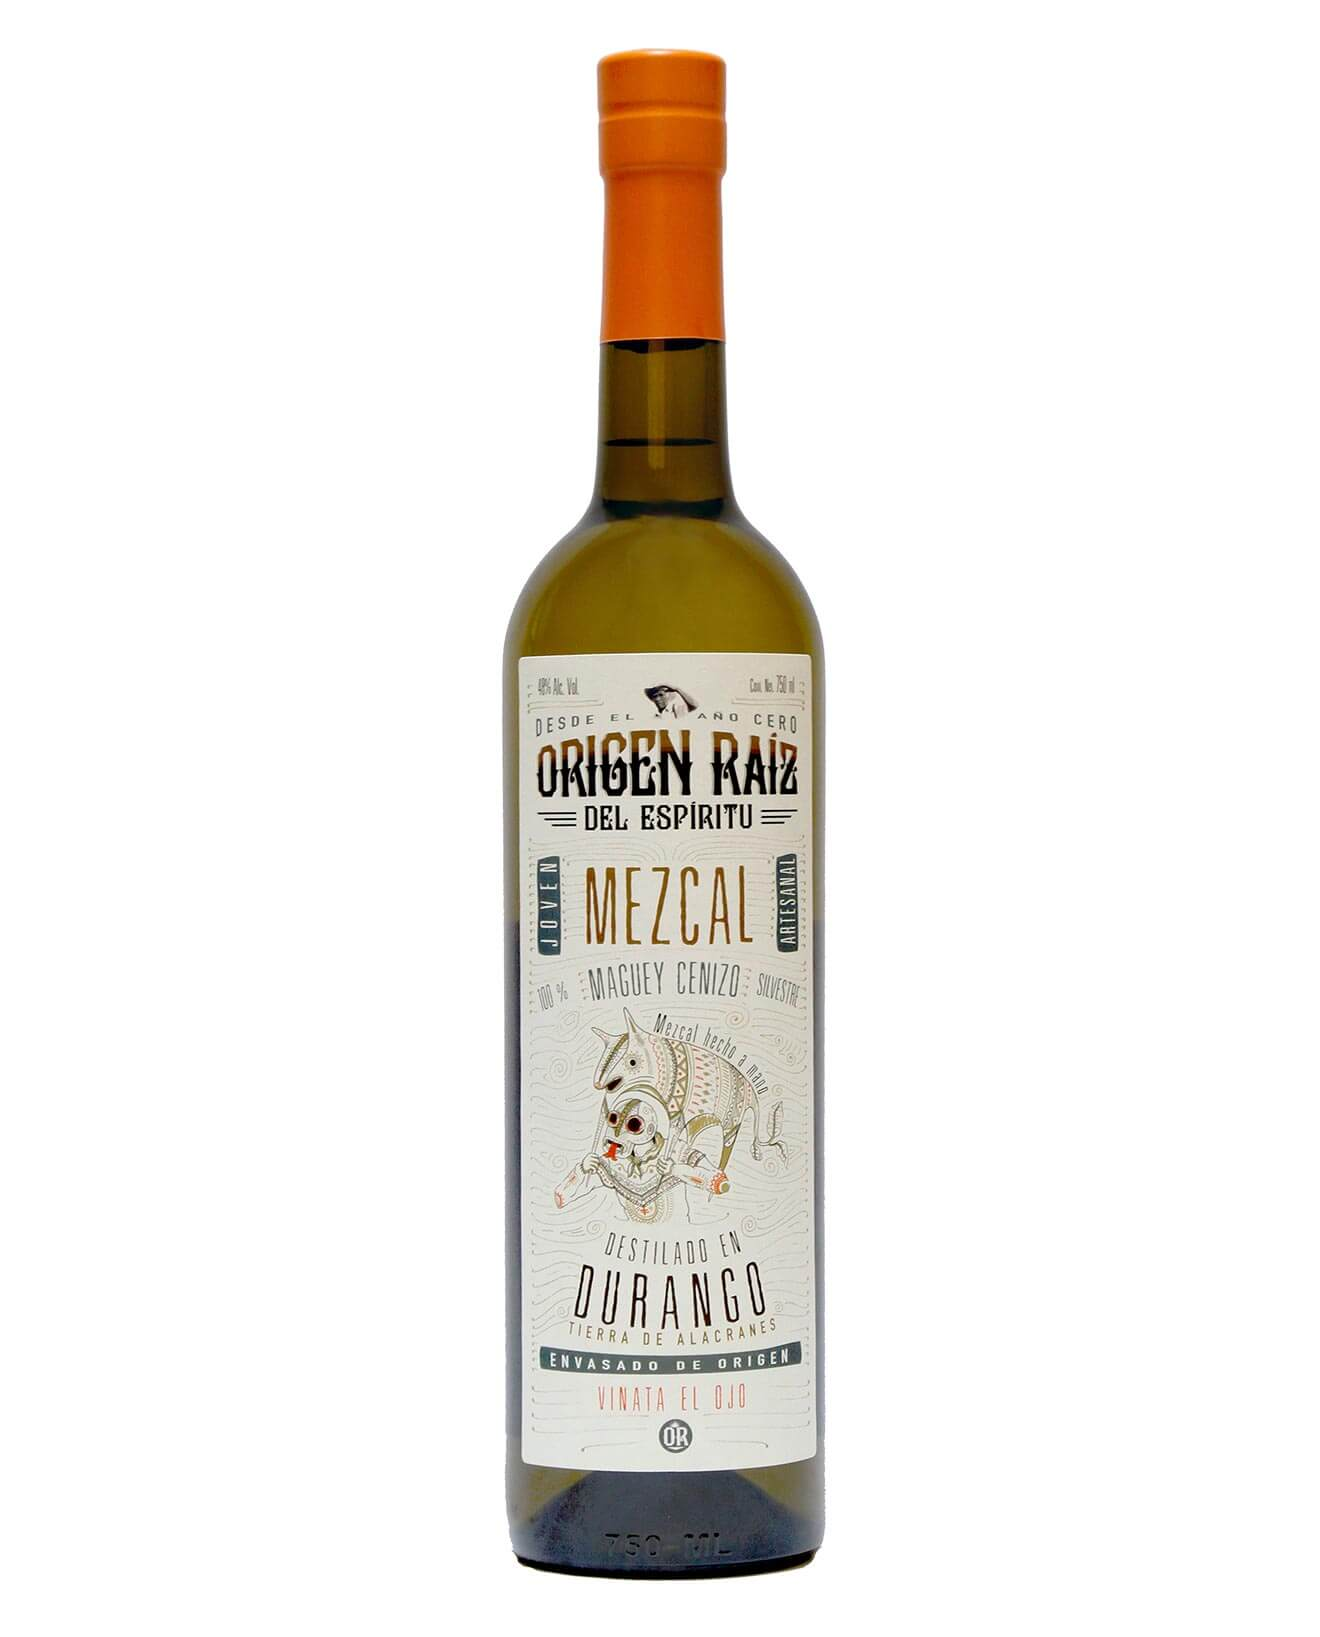 Origen Raiz Mezcal, bottle on white